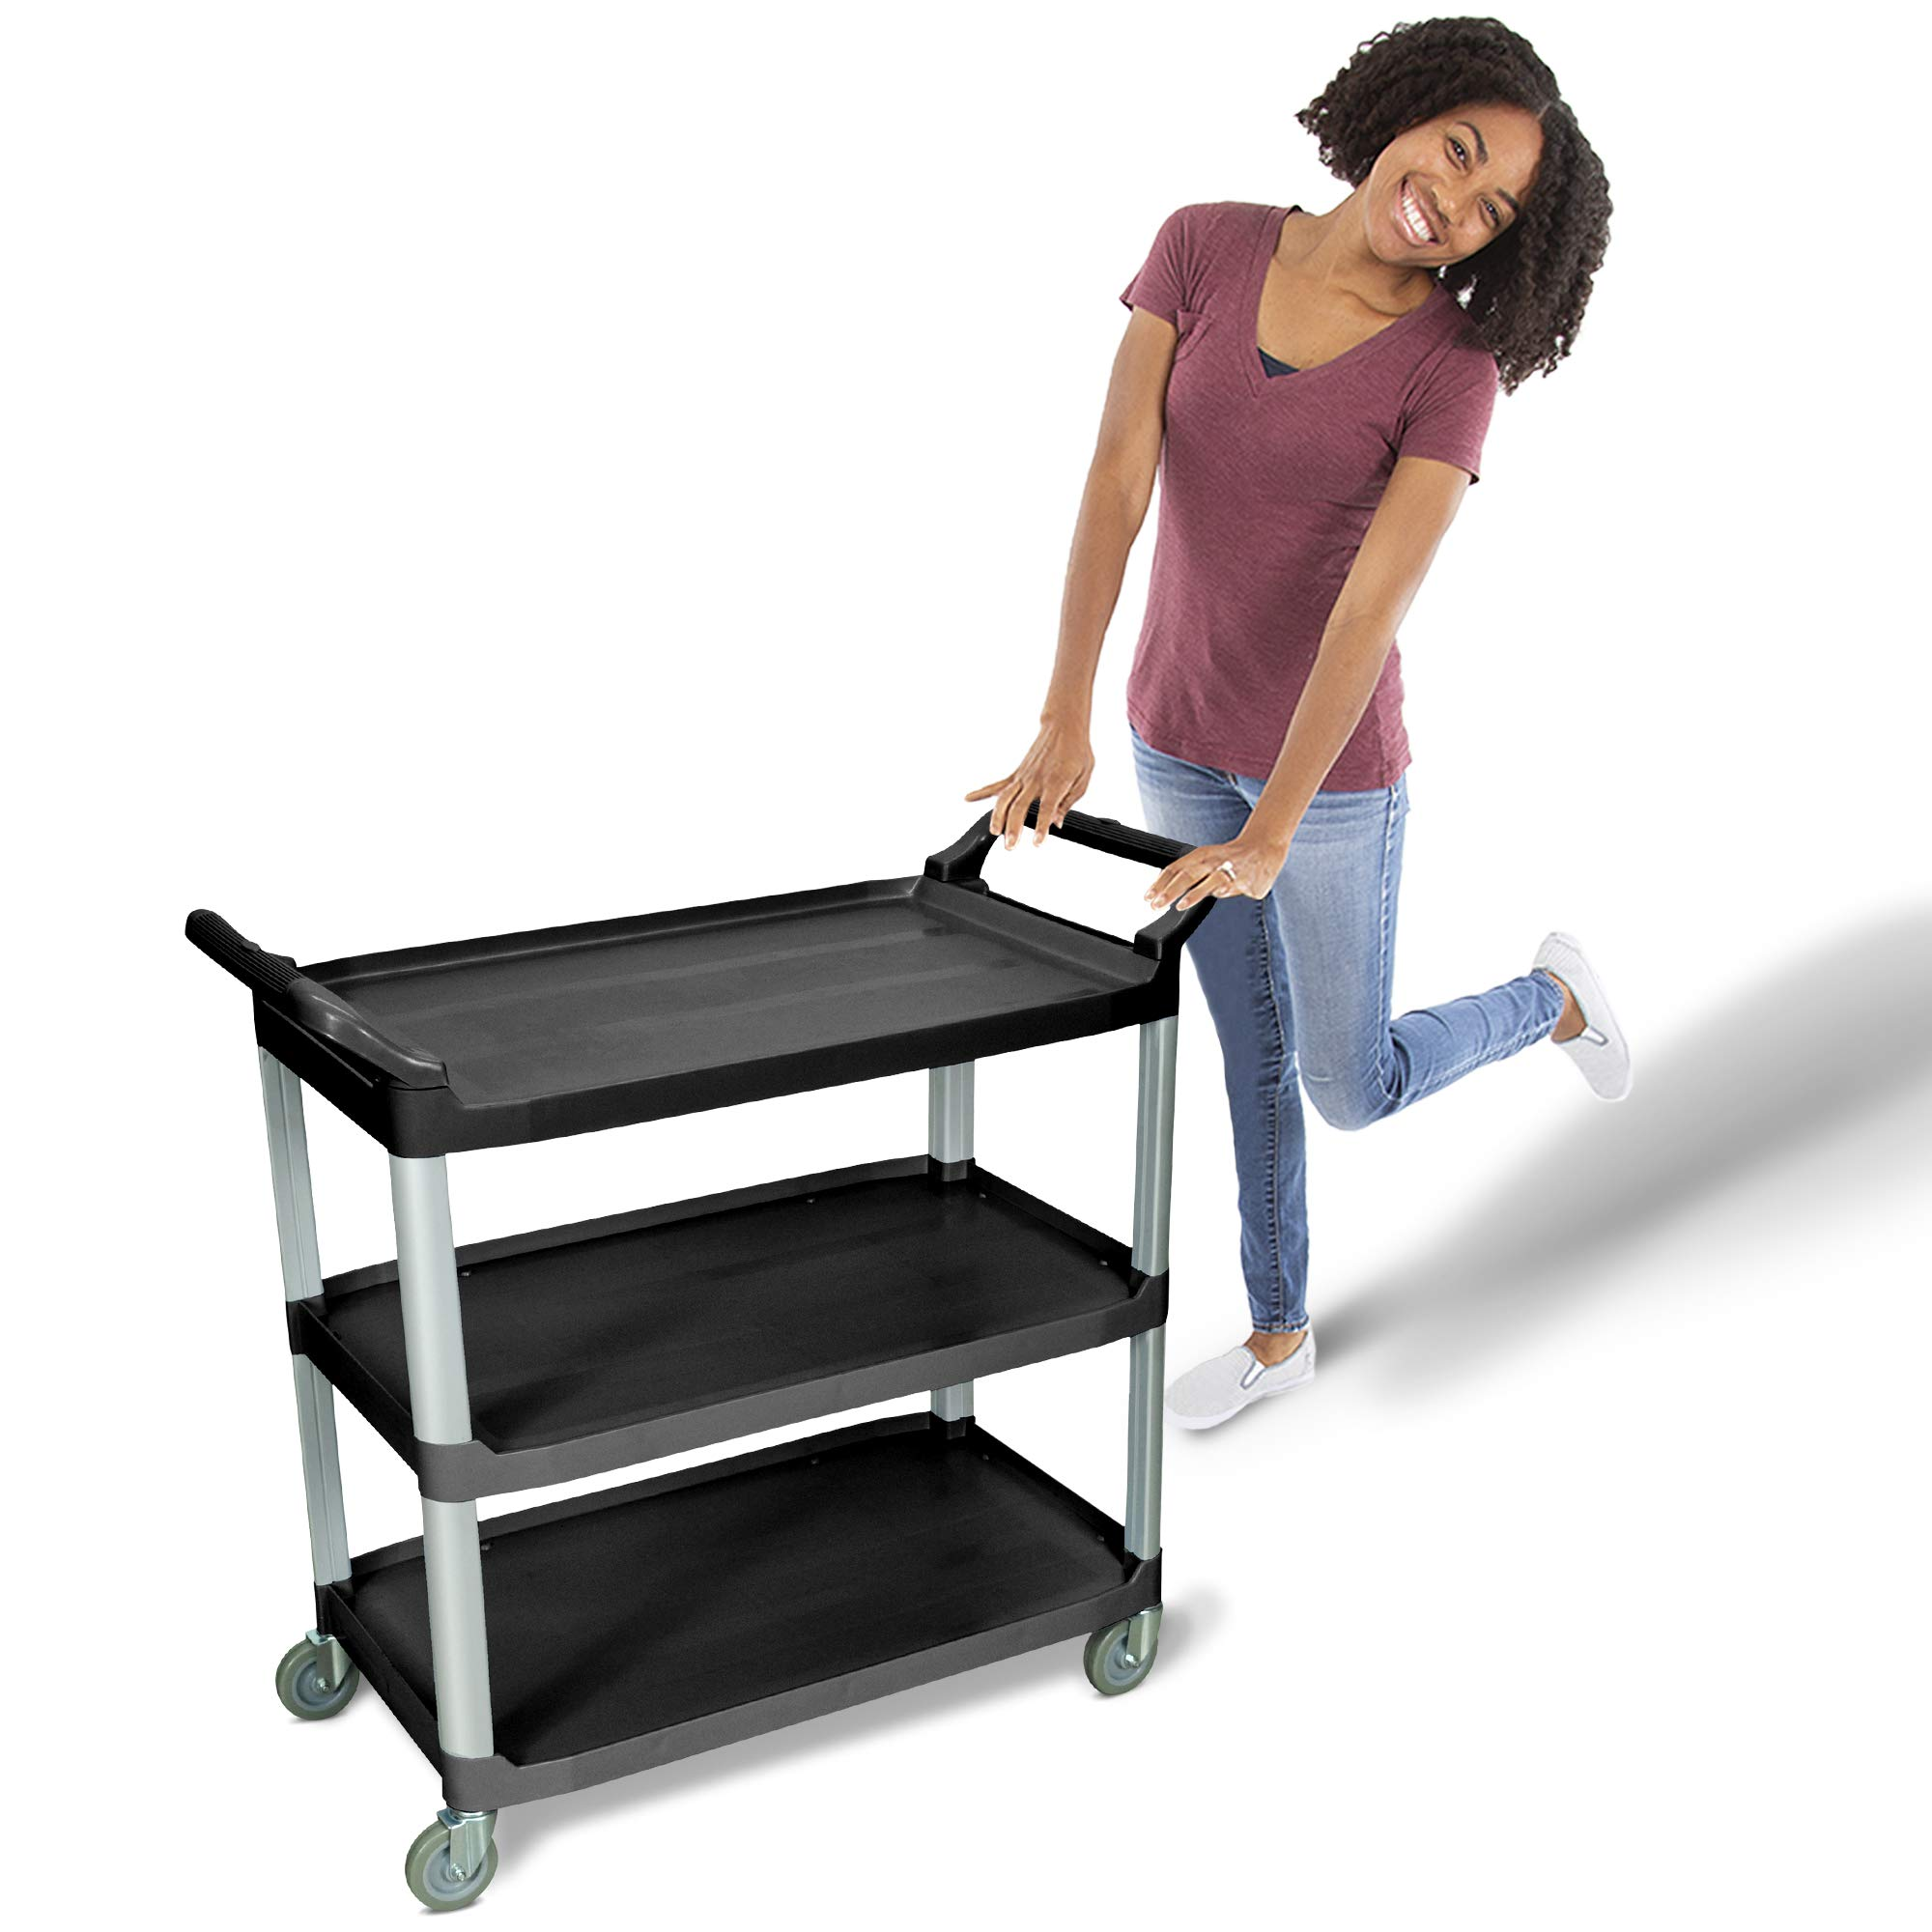 Tubstr Large Serving Cart with Three Shelves | Dual Handles & Rolling Casters - Supports up to 300 lbs.! Service Utility Cart Perfect for Food Service, Warehouse, Healthcare, School and More!